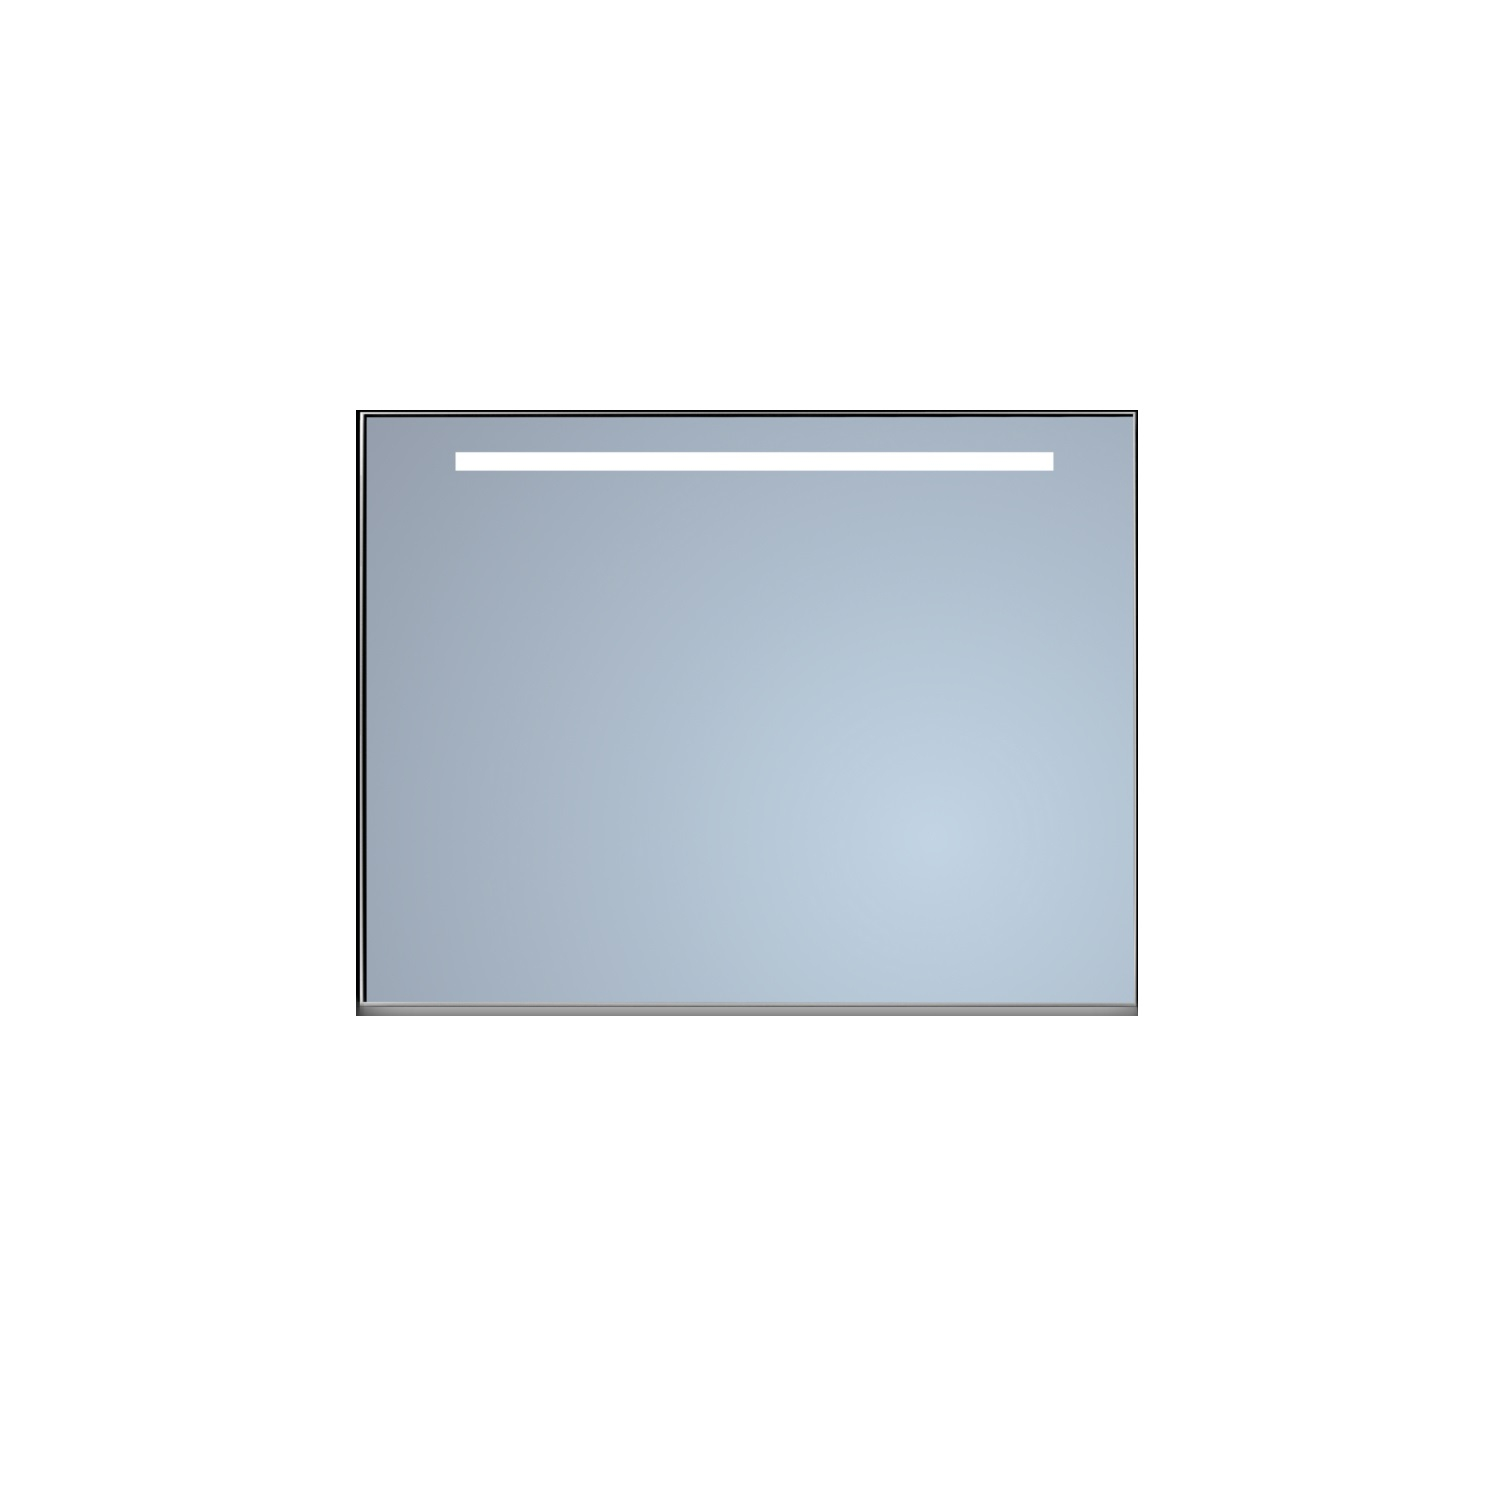 Badkamerspiegel Sanicare Q-Mirrors Ambiance en 'Cold White' LED-verlichting 70x70x3,5 Alu Omlijsting